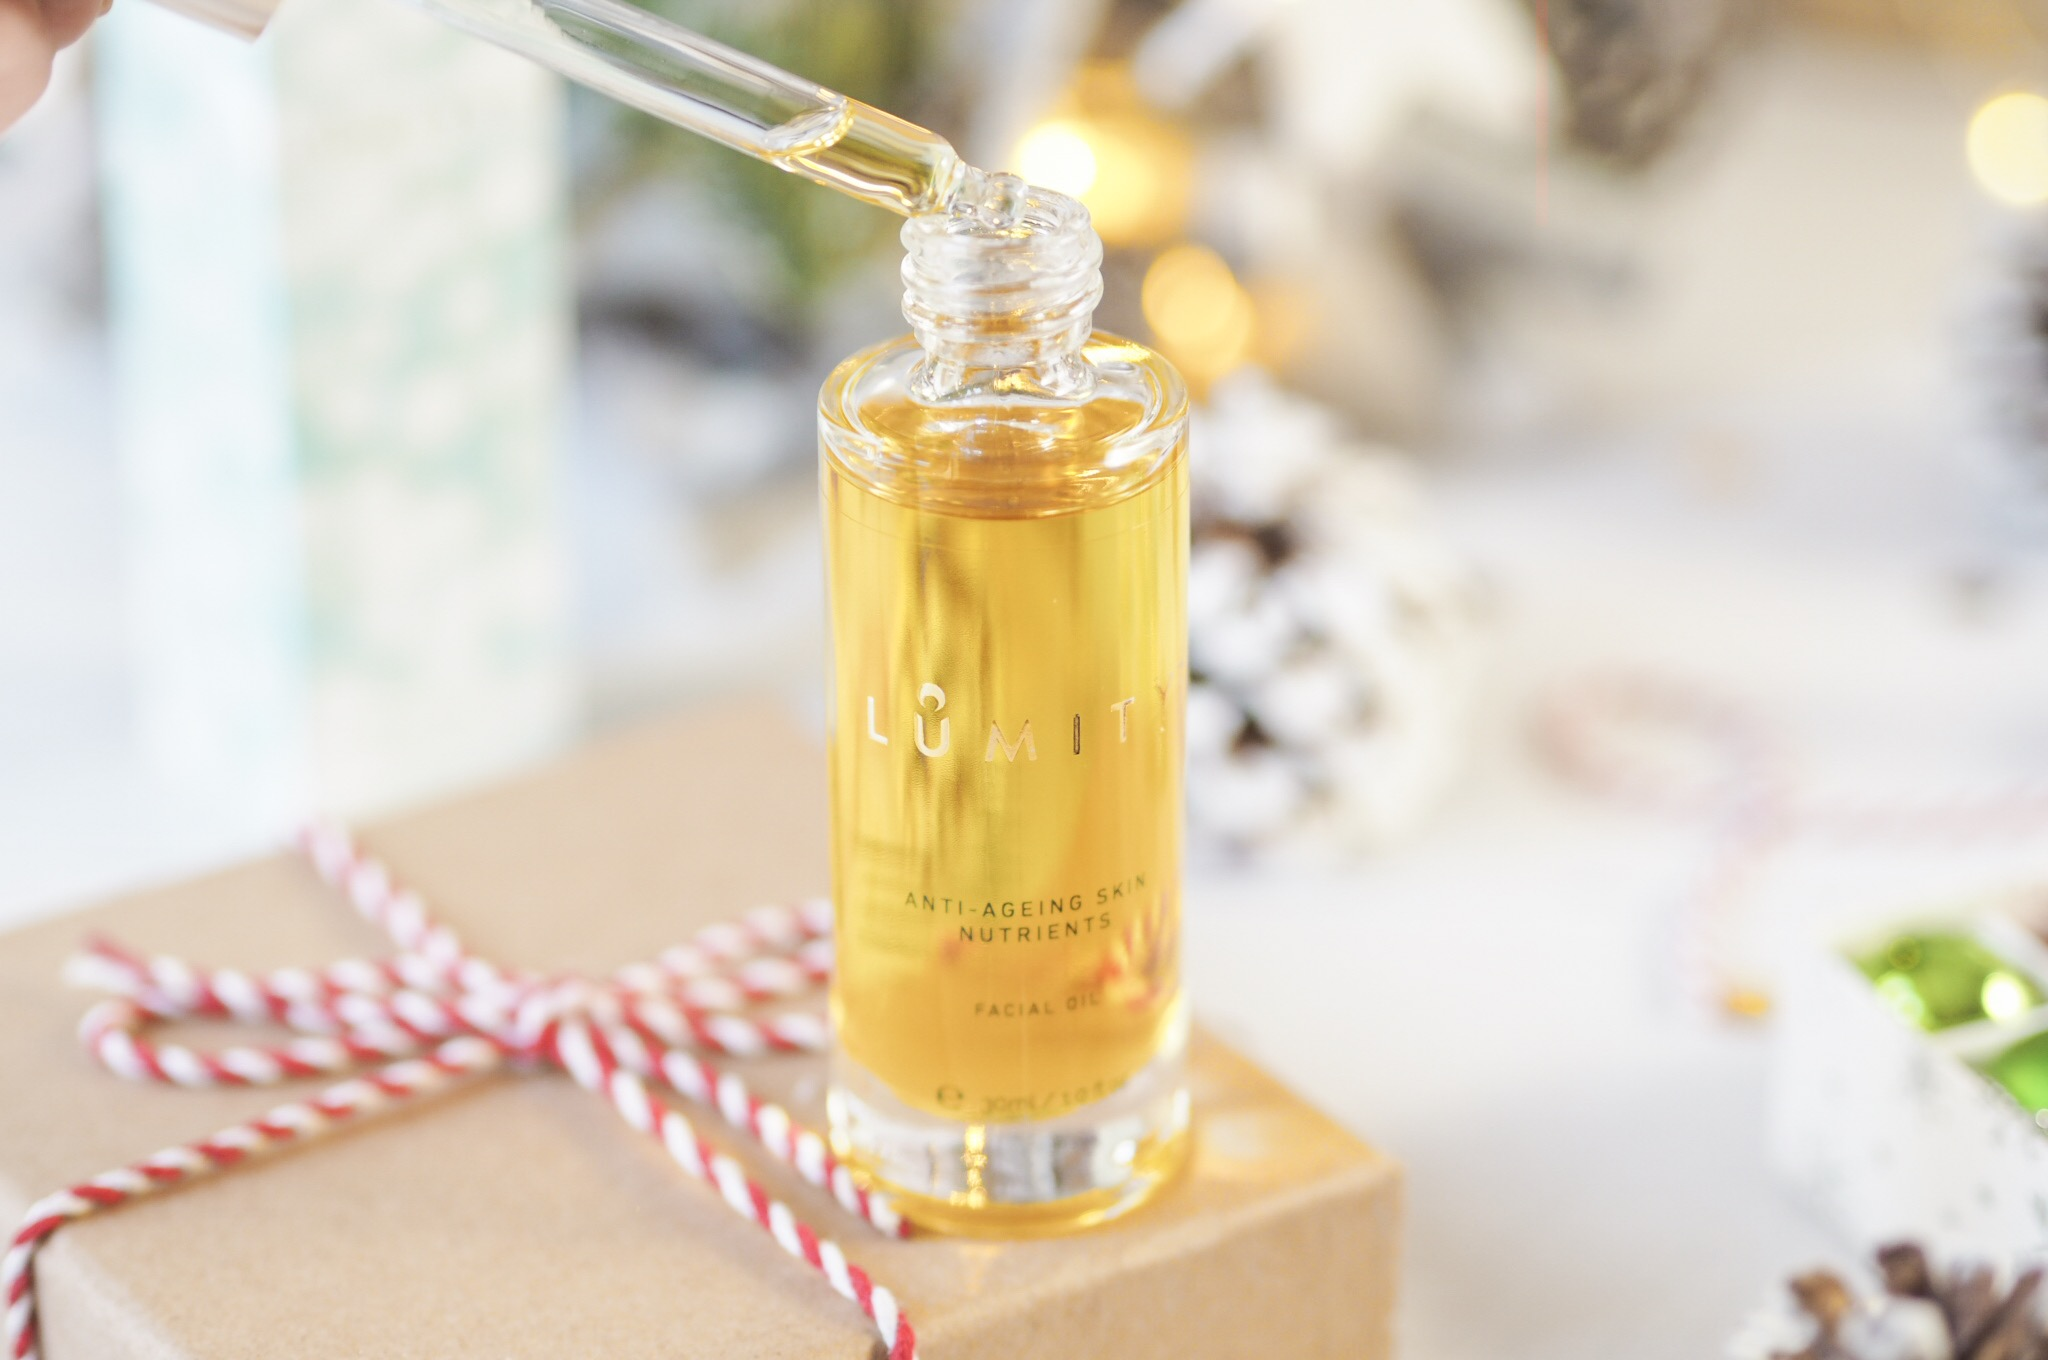 Lumity Life Anti-Aging Facial Oil